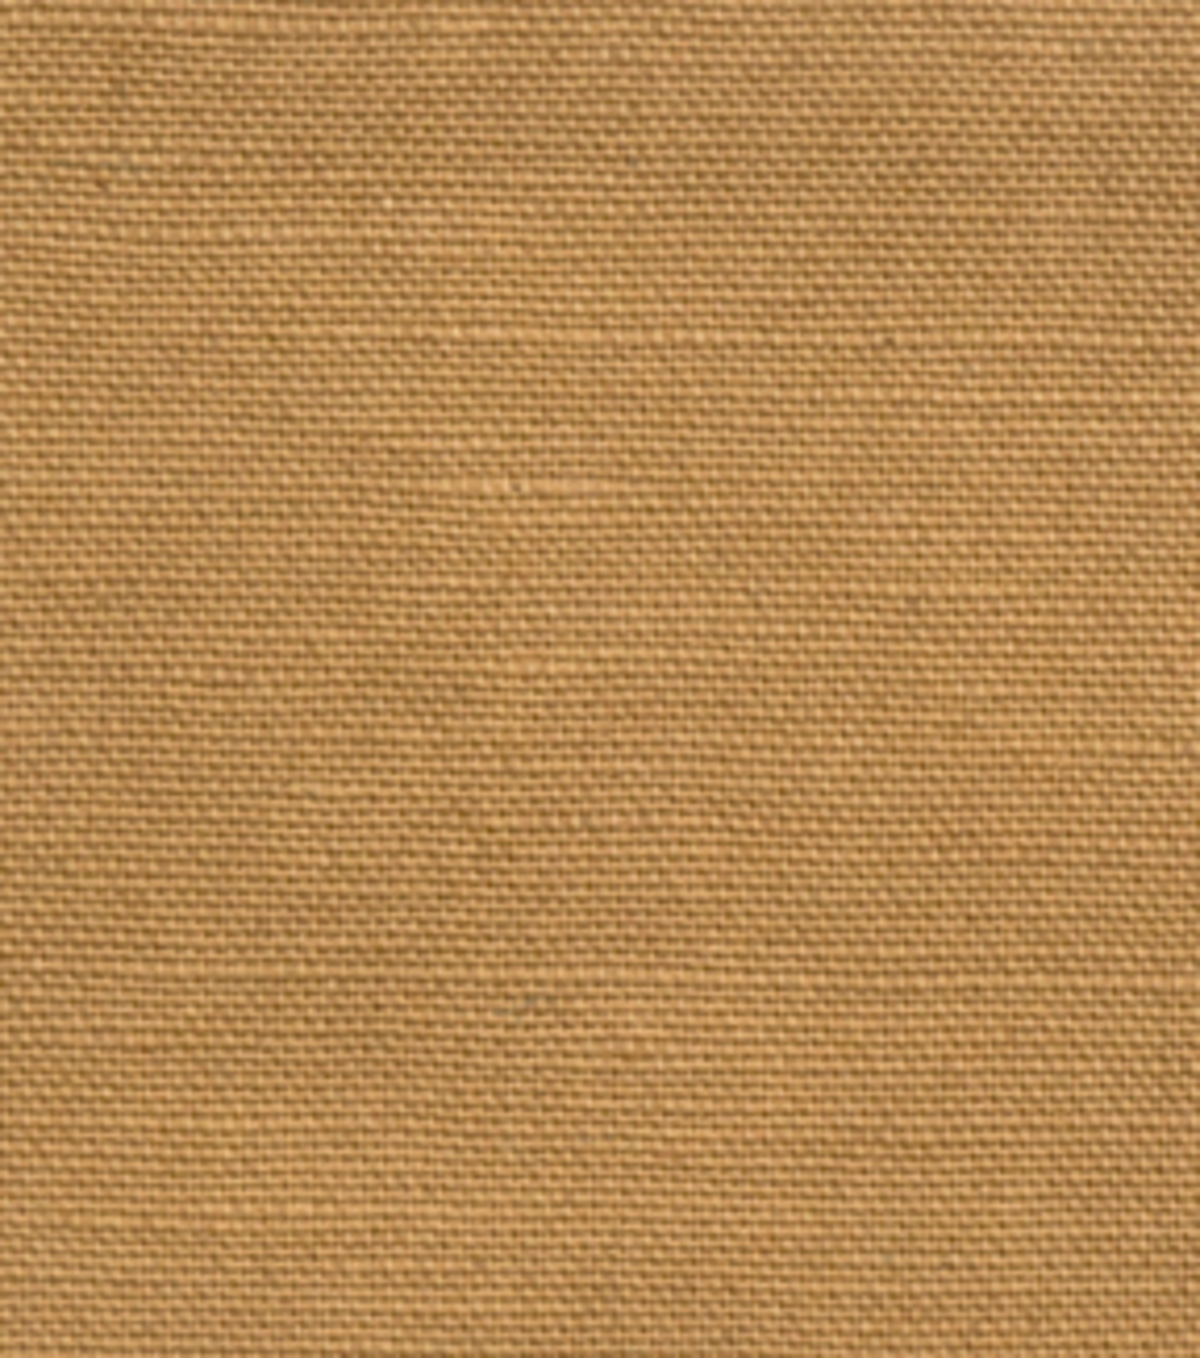 Home Decor 8\u0022x8\u0022 Fabric Swatch-Signature Series Sonoma Linen-Cotton Camel